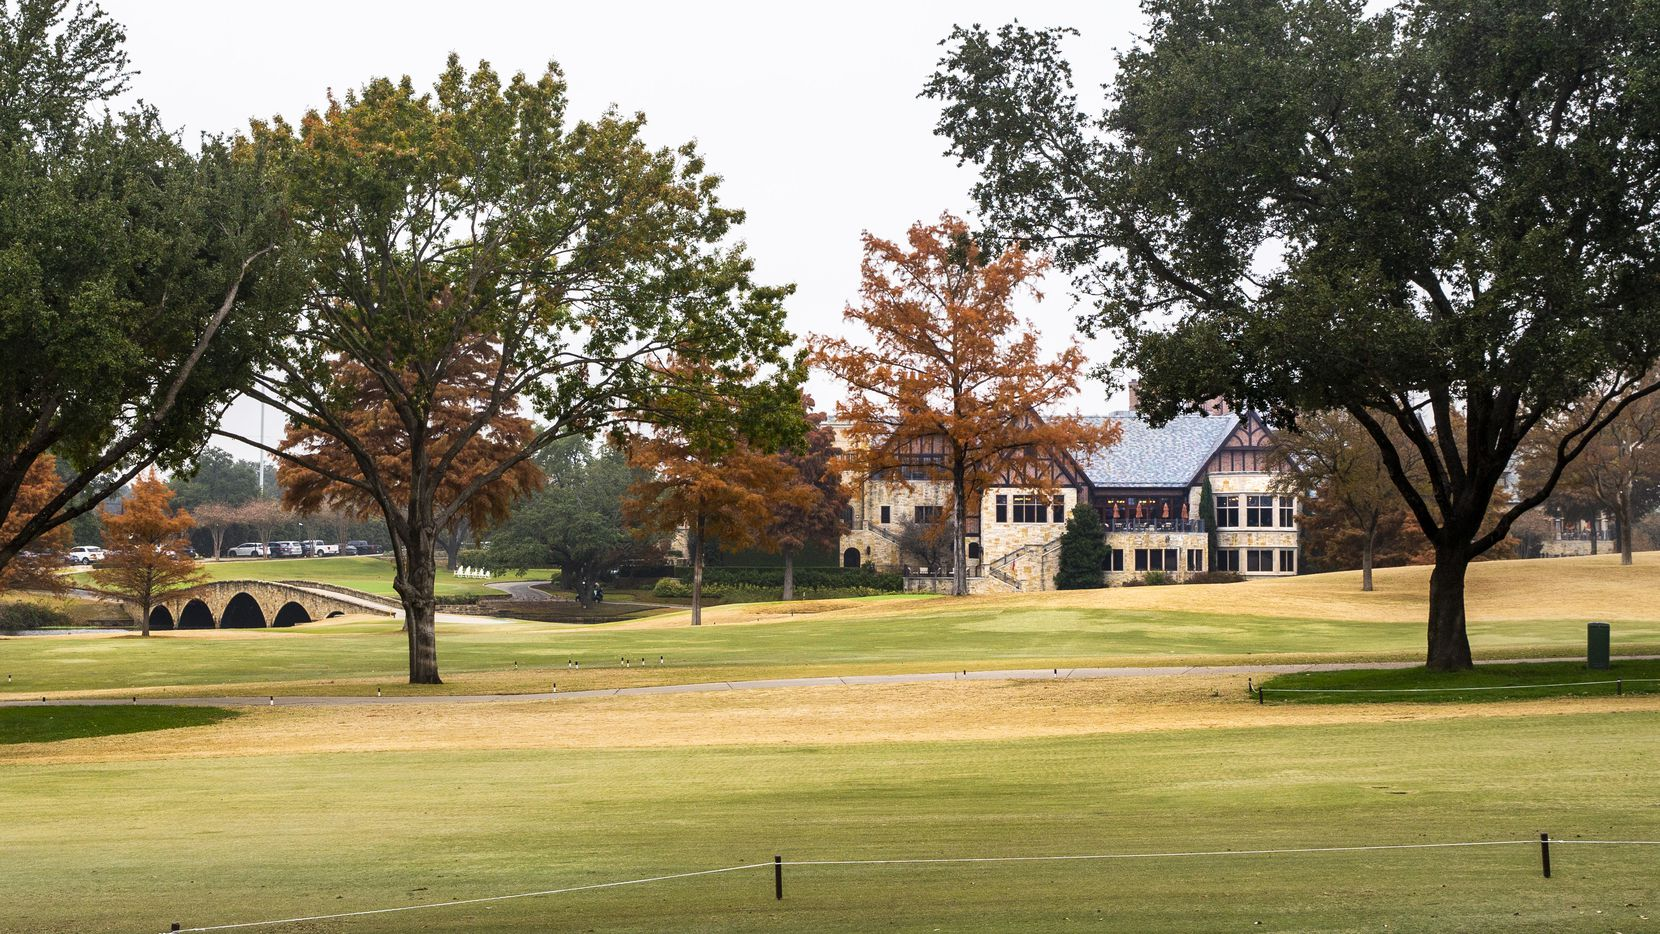 The Dallas Country Club during an overcast morning in Dallas on Wednesday, November 20, 2019. (Lynda M. Gonzalez/The Dallas Morning News)